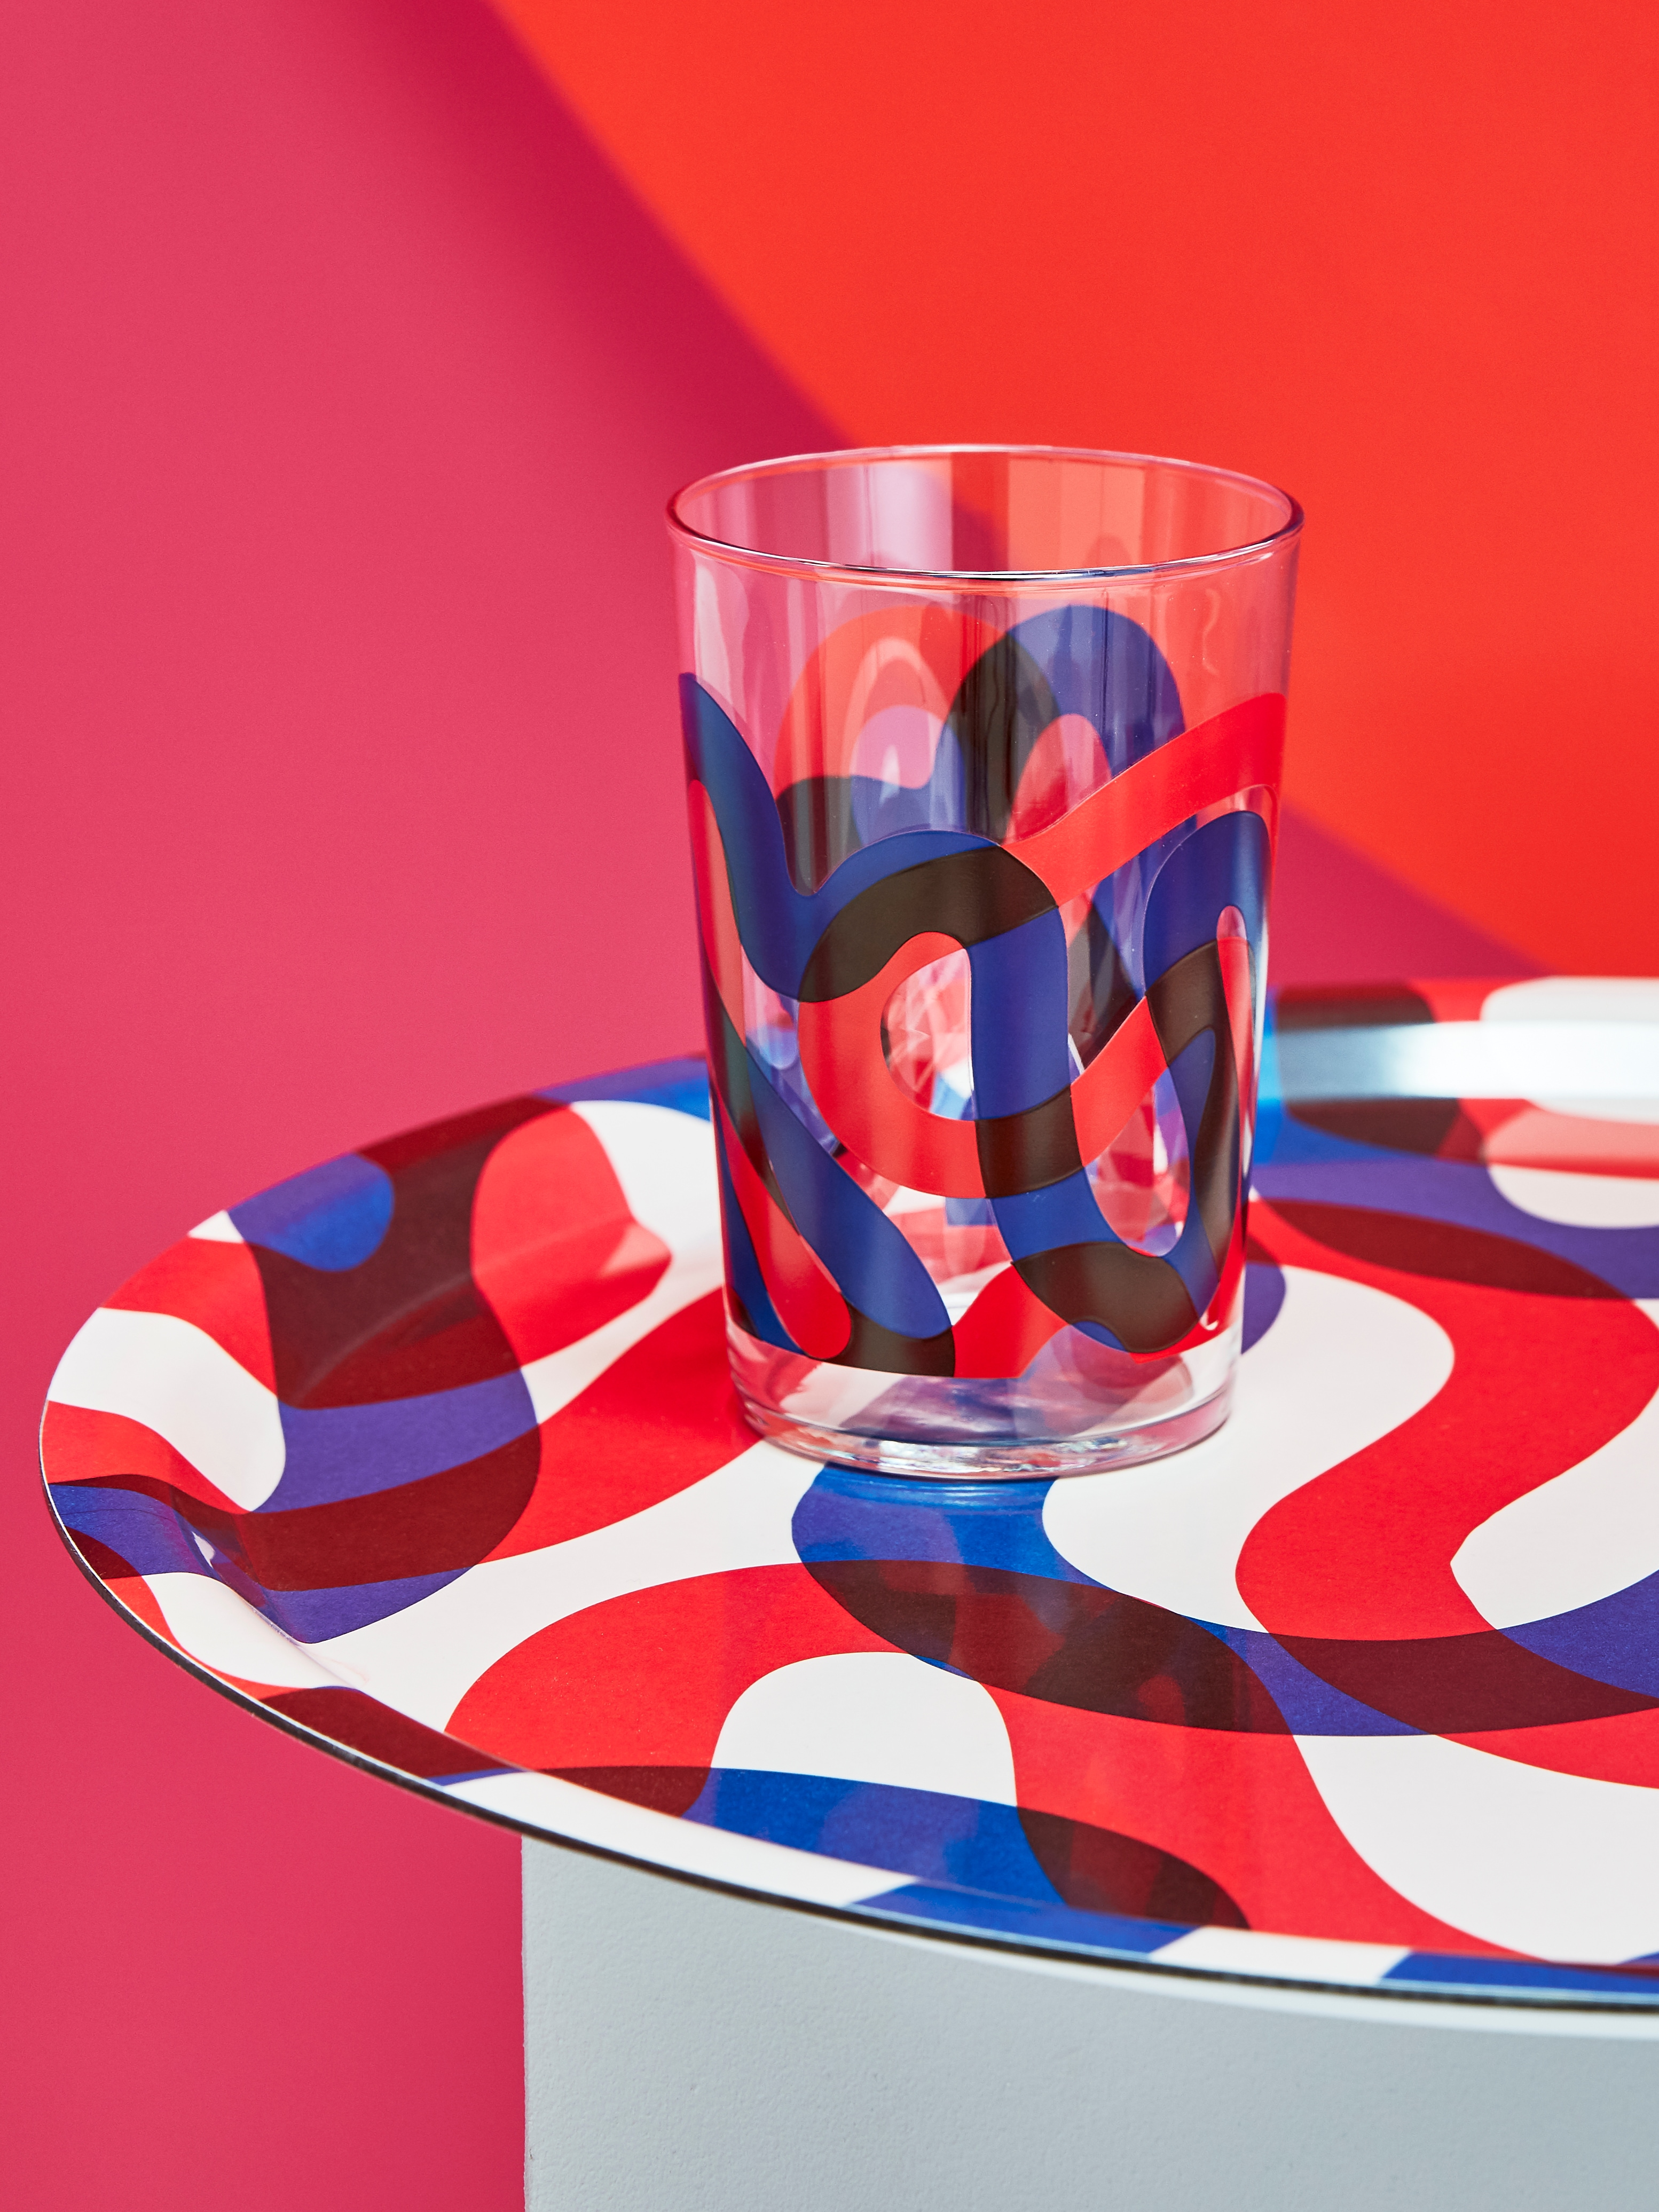 A close-up of a matching glass on a round, melamine FRAMKALLA patterned tray in white with big, red and blue squiggles.